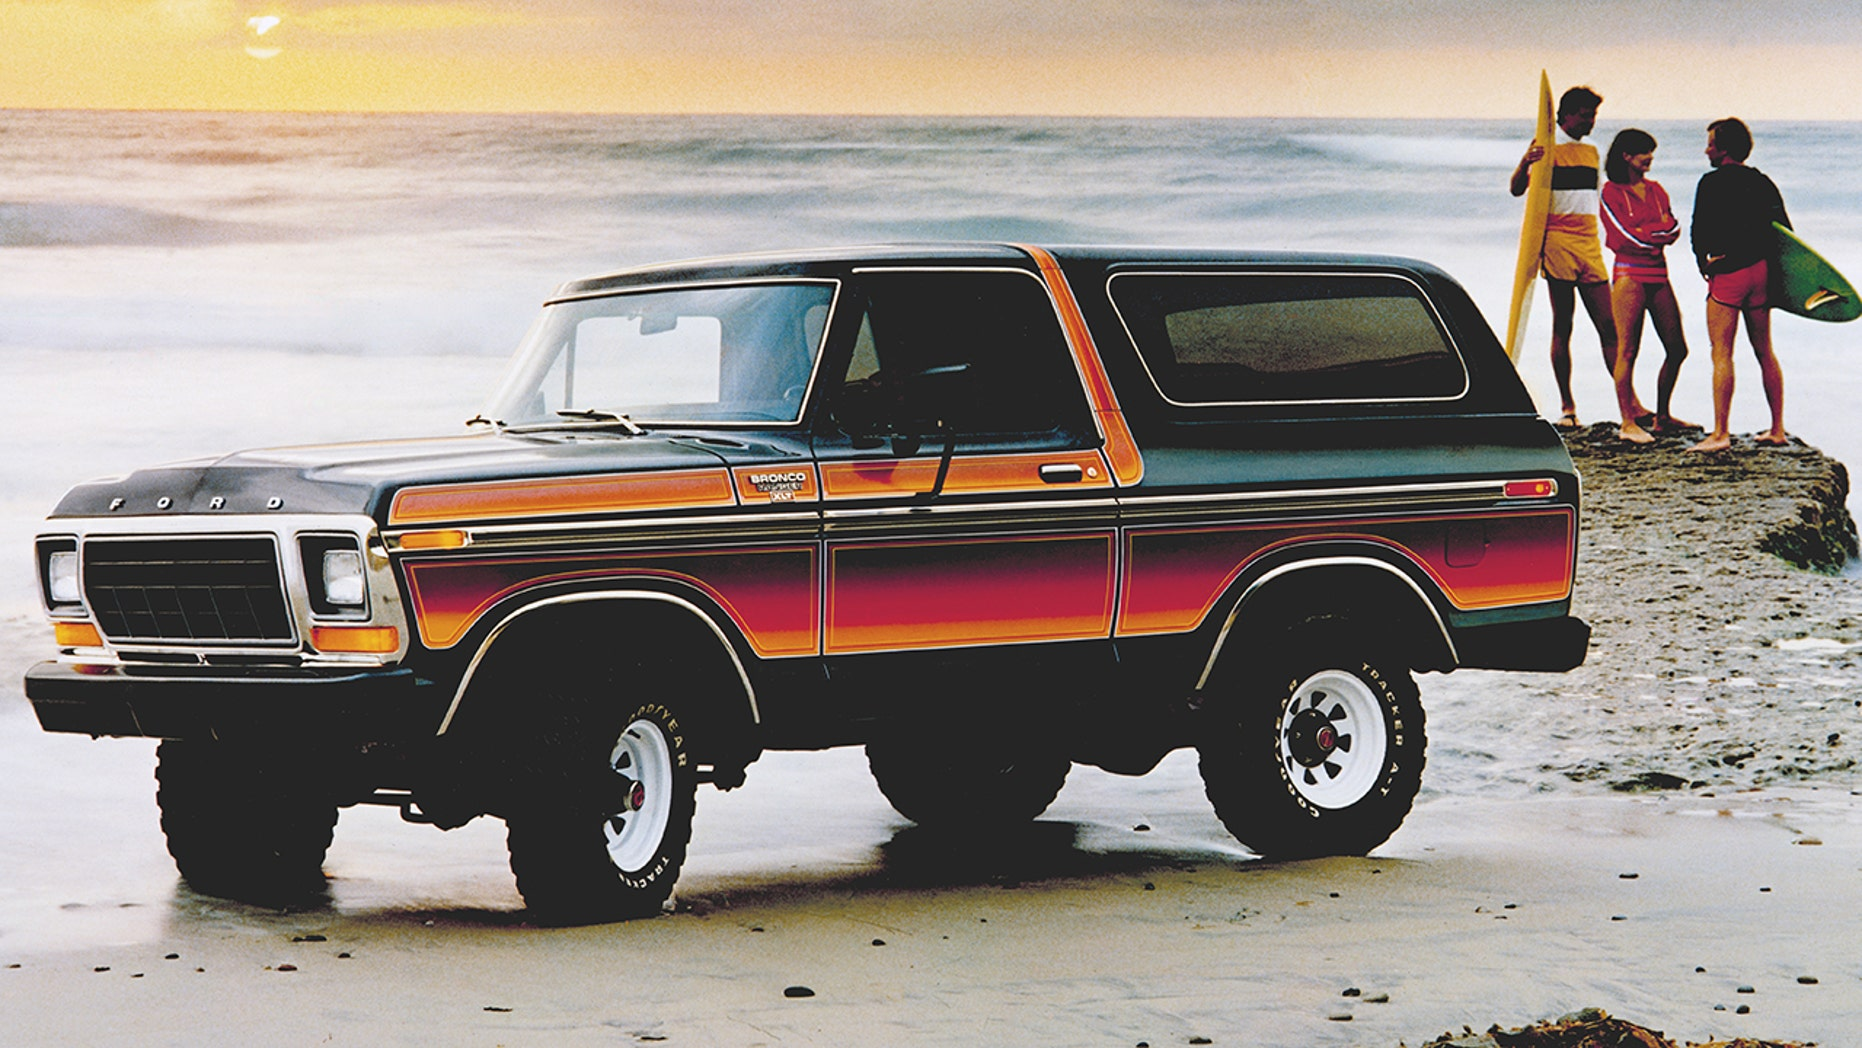 Tony Stewart's Ford Bronco